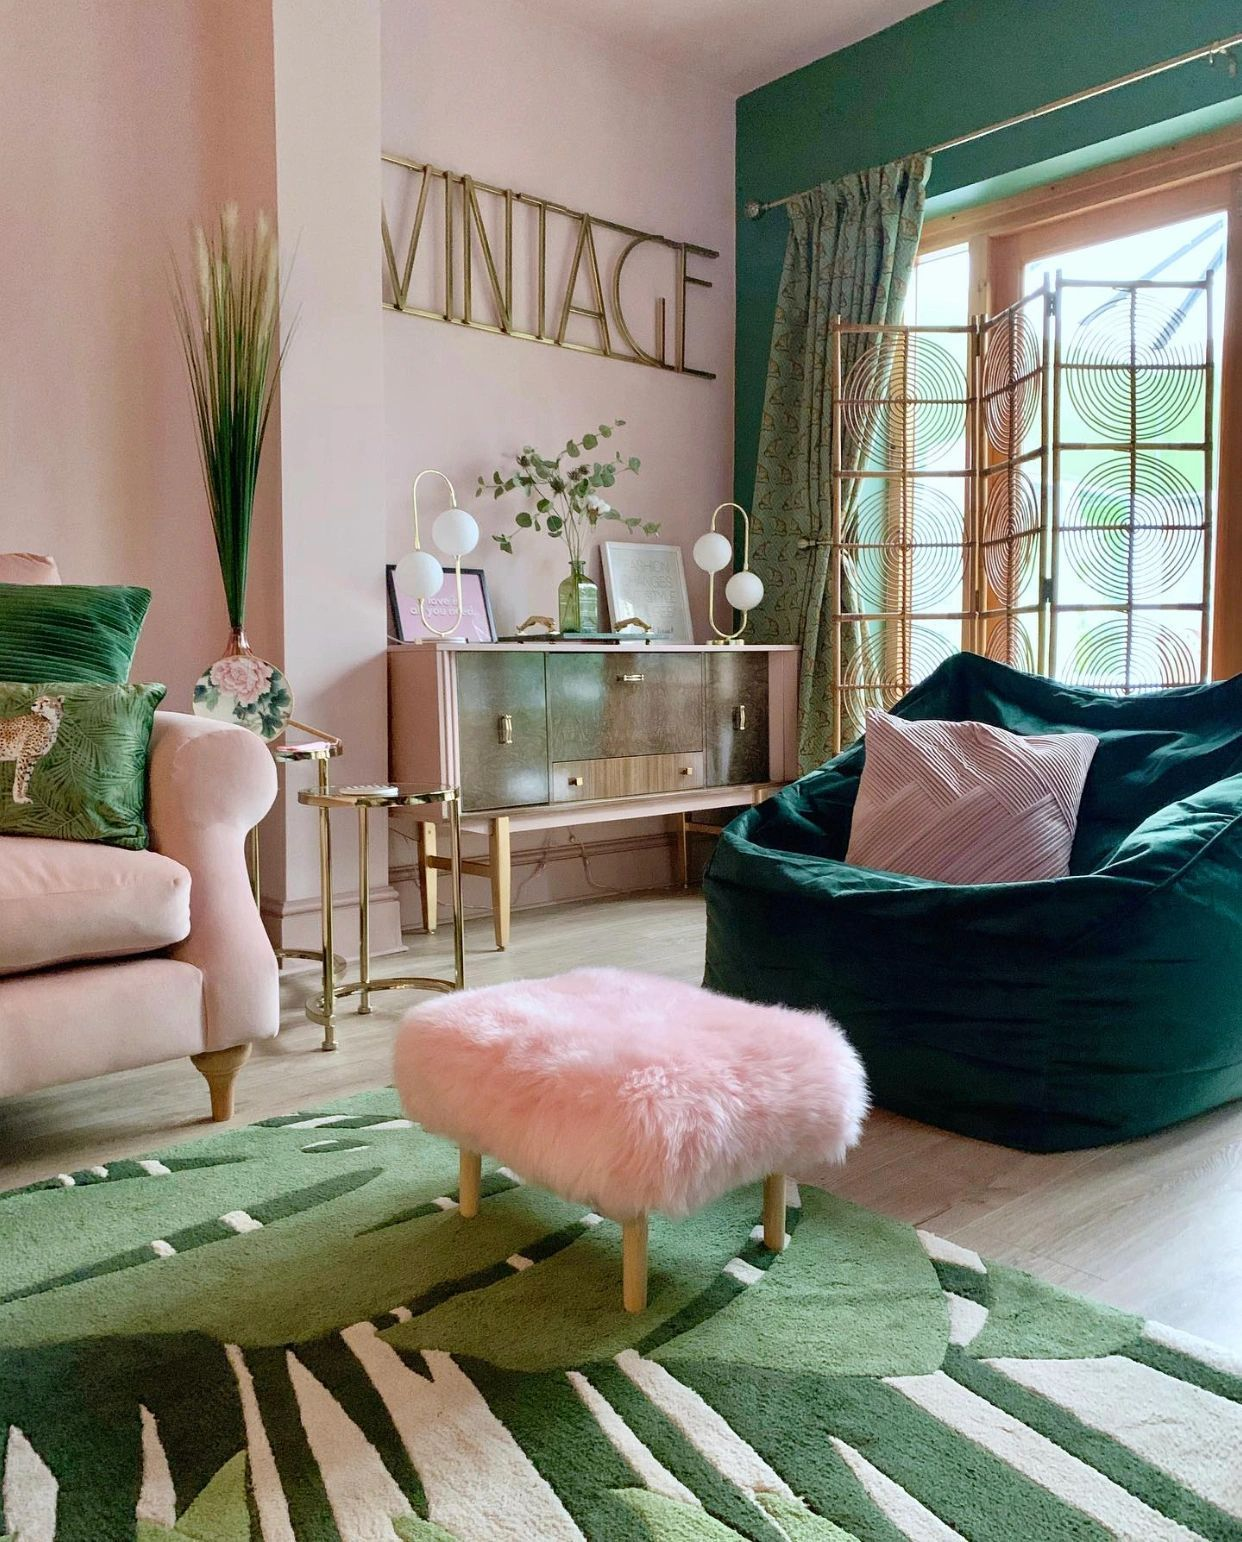 Pink And Green Room Decor  from i.pinimg.com